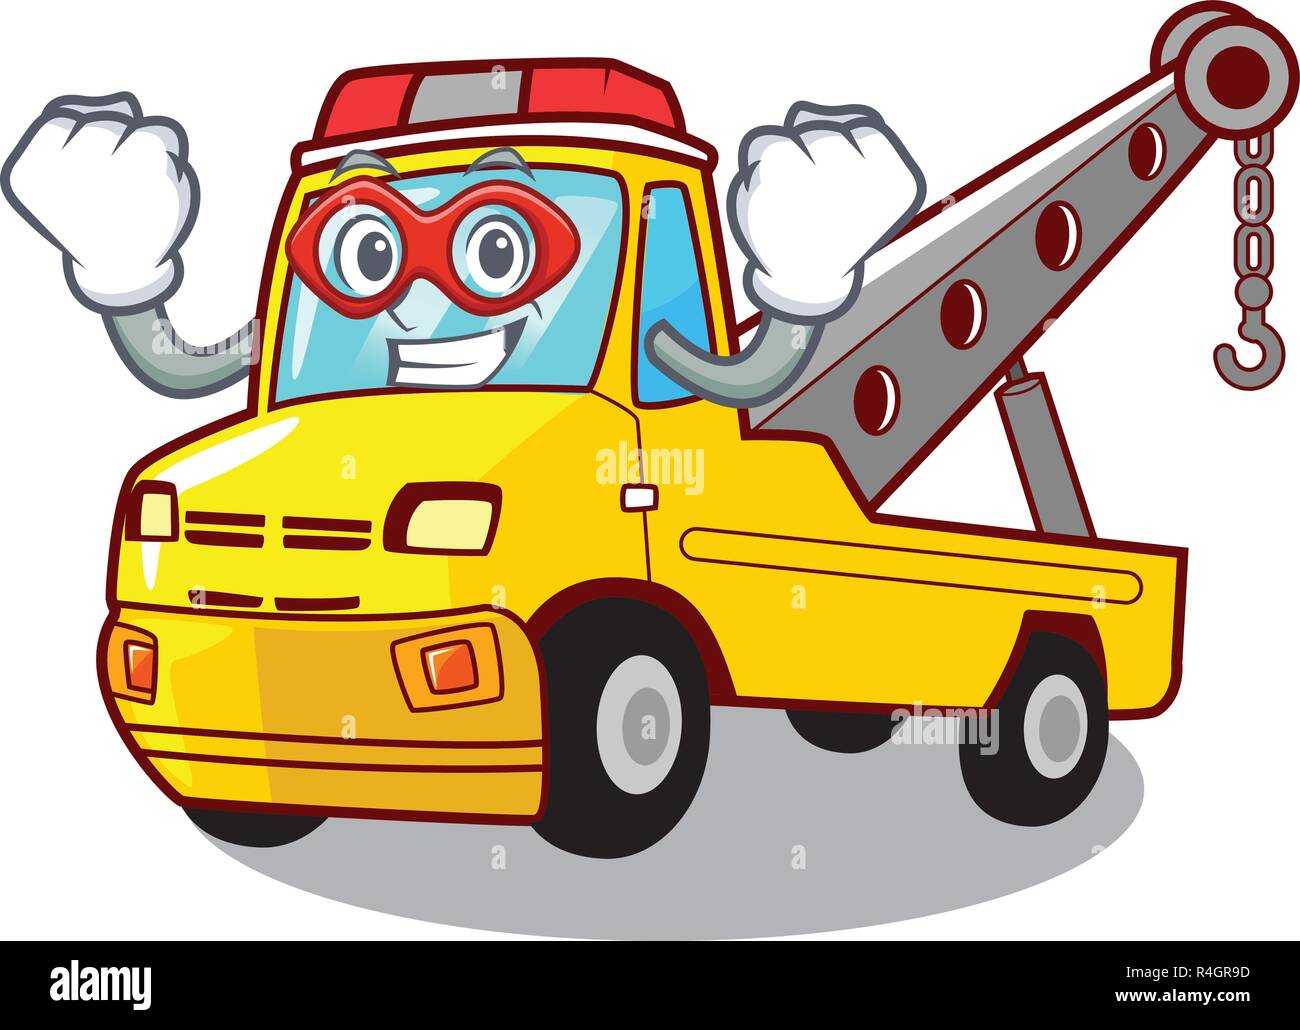 Super hero truck tow the vehicle with mascot - Stock Vector